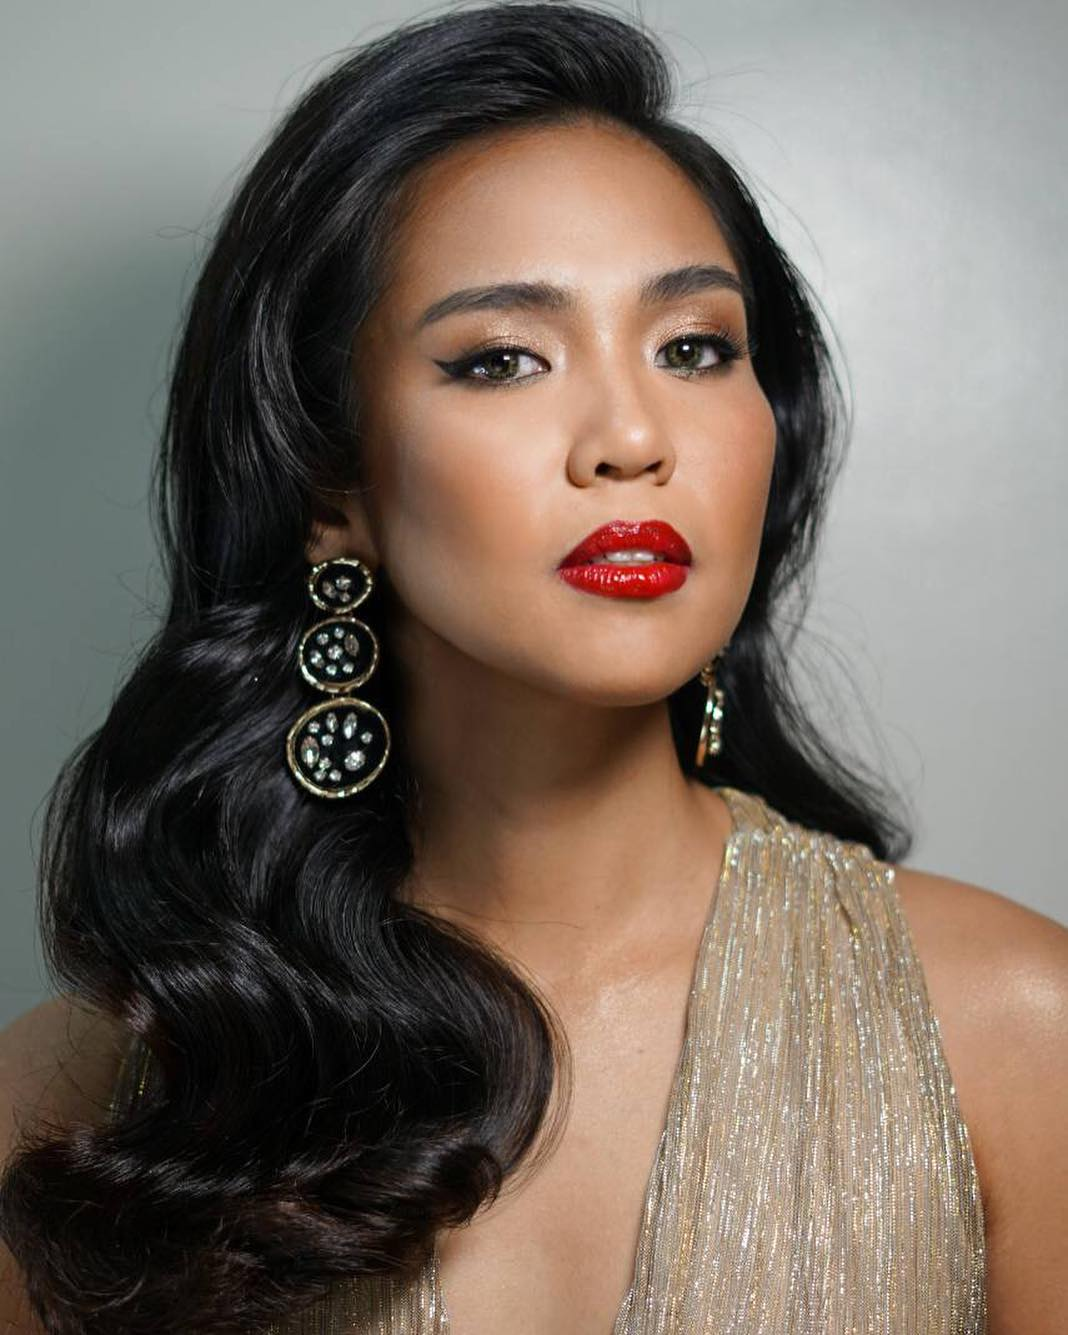 miss saigon bar with Aicelle Santos Bags Major Role In Uk Production Of Miss Saigon on Saigon Bar Girls L073jVJmDVUyEg5Tyu3bXg7OhjSndOY1gdogWC8BbNA likewise Lea Salonga besides Miss Saigon as well Perth Hotels Miss Maud Swedish Hotel h2738845 together with Recreating Cheers Bar Stage.